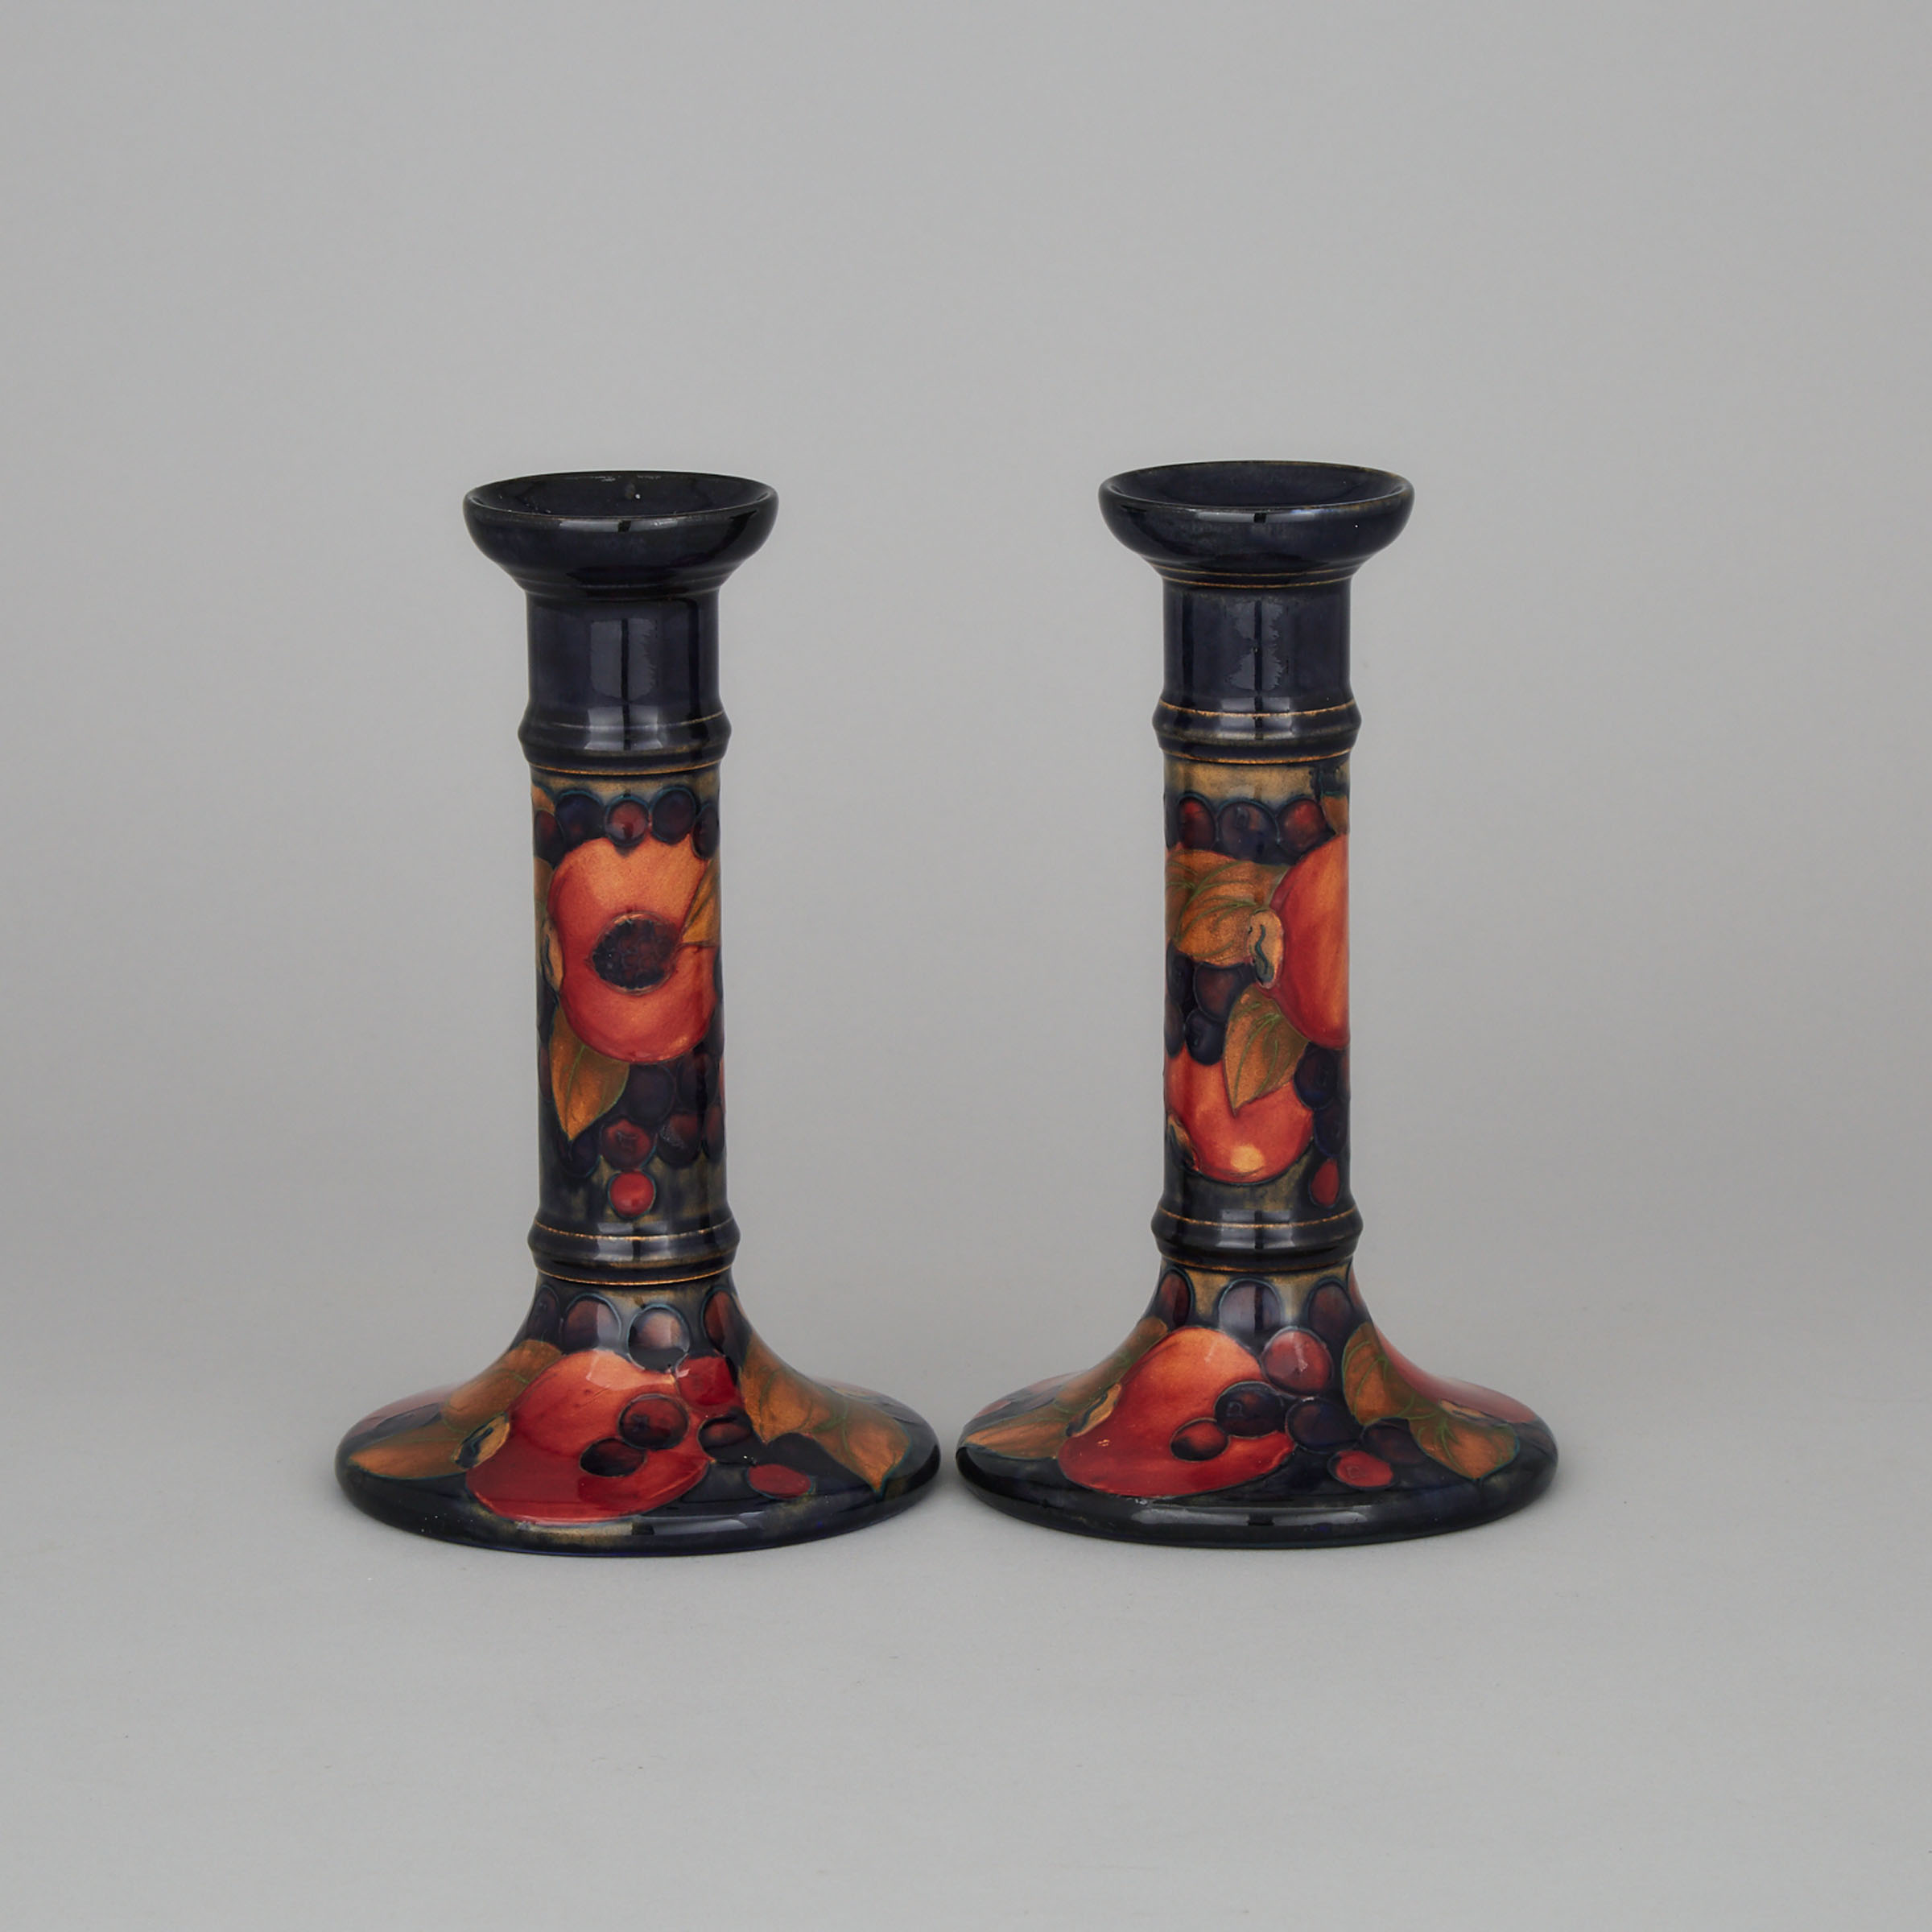 Pair of Moorcroft Pomegranate Table Candlesticks, c.1925